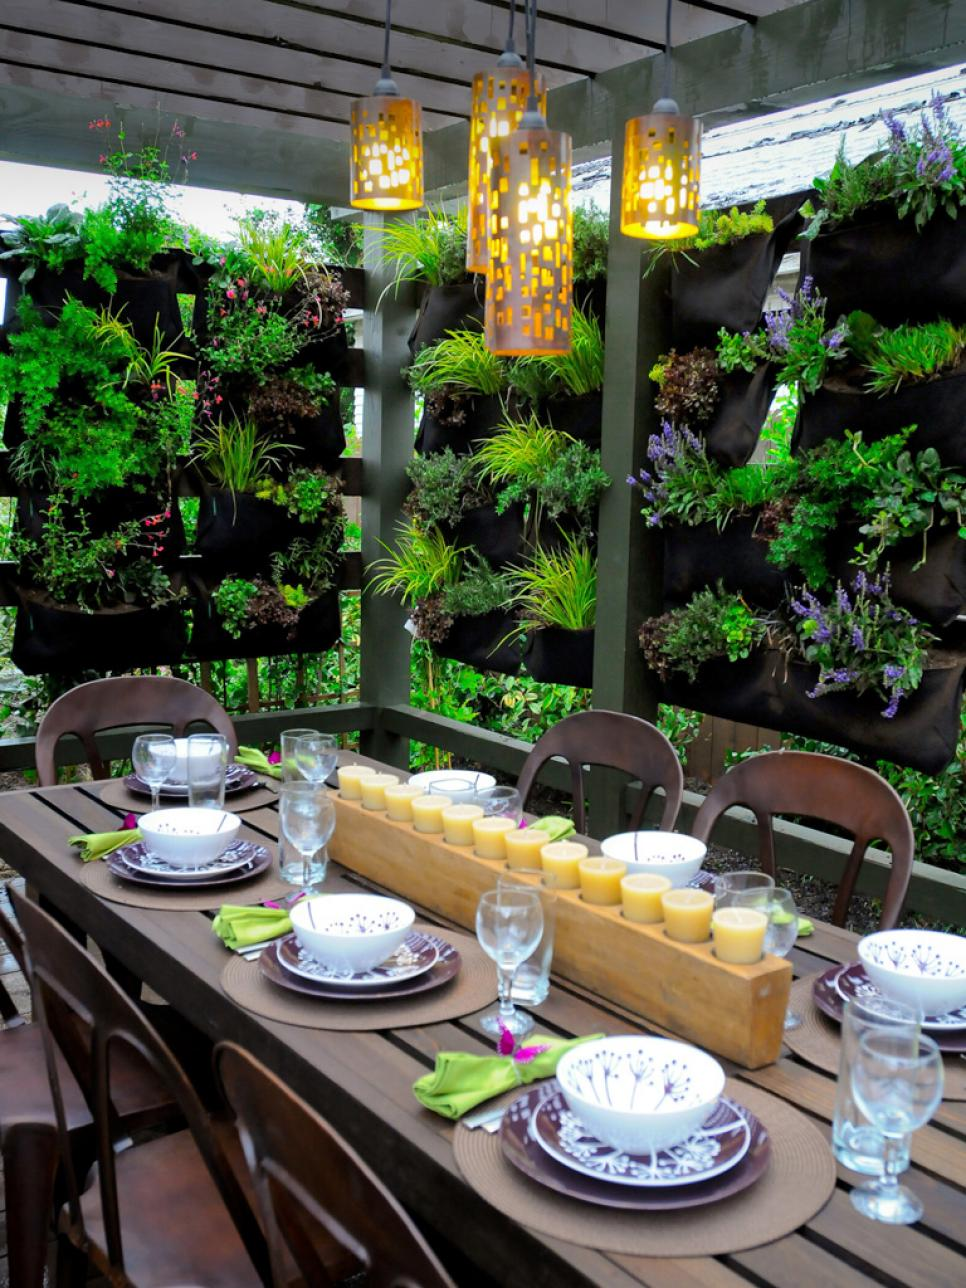 28 Awesome Diy Outdoor Privacy Screen Ideas - 1400972490907